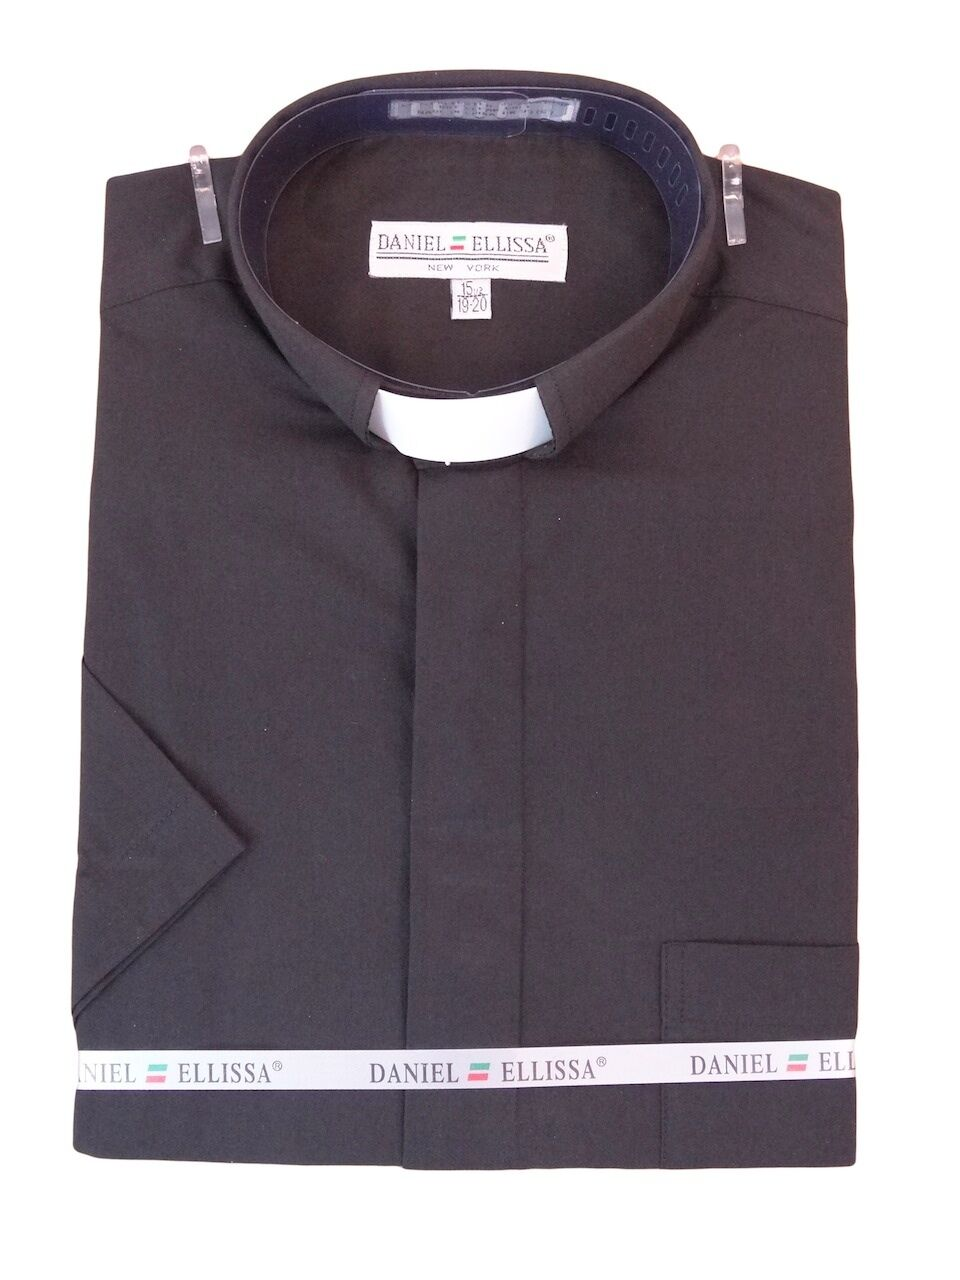 Men's Clergy Tab Collar Short Sleeve Black Dress Shirt Pa...